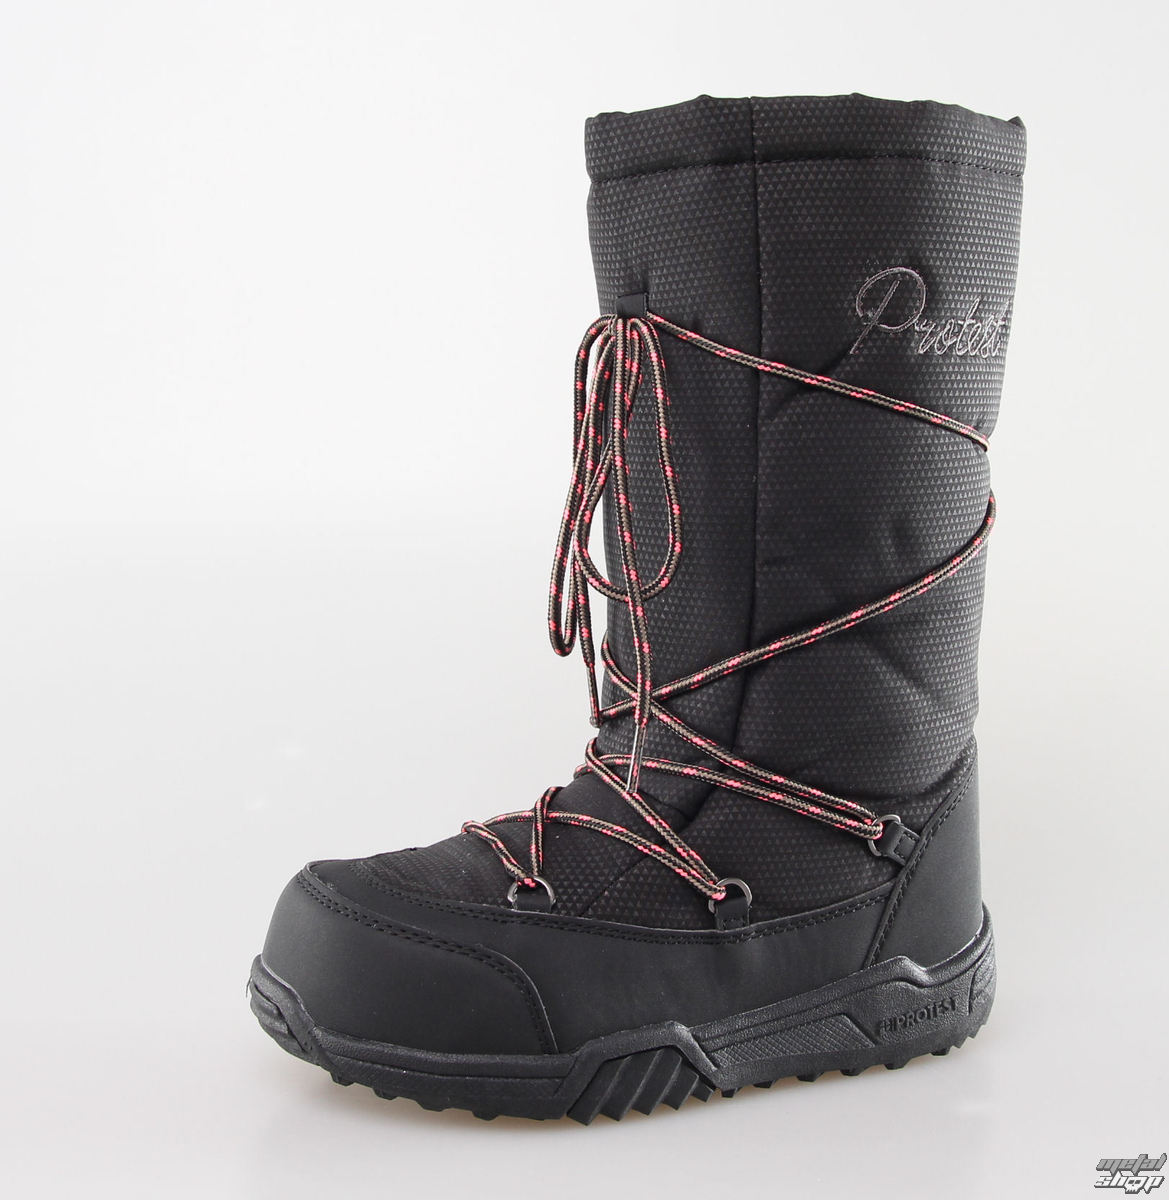 winter boots women's - Abalone - PROTEST